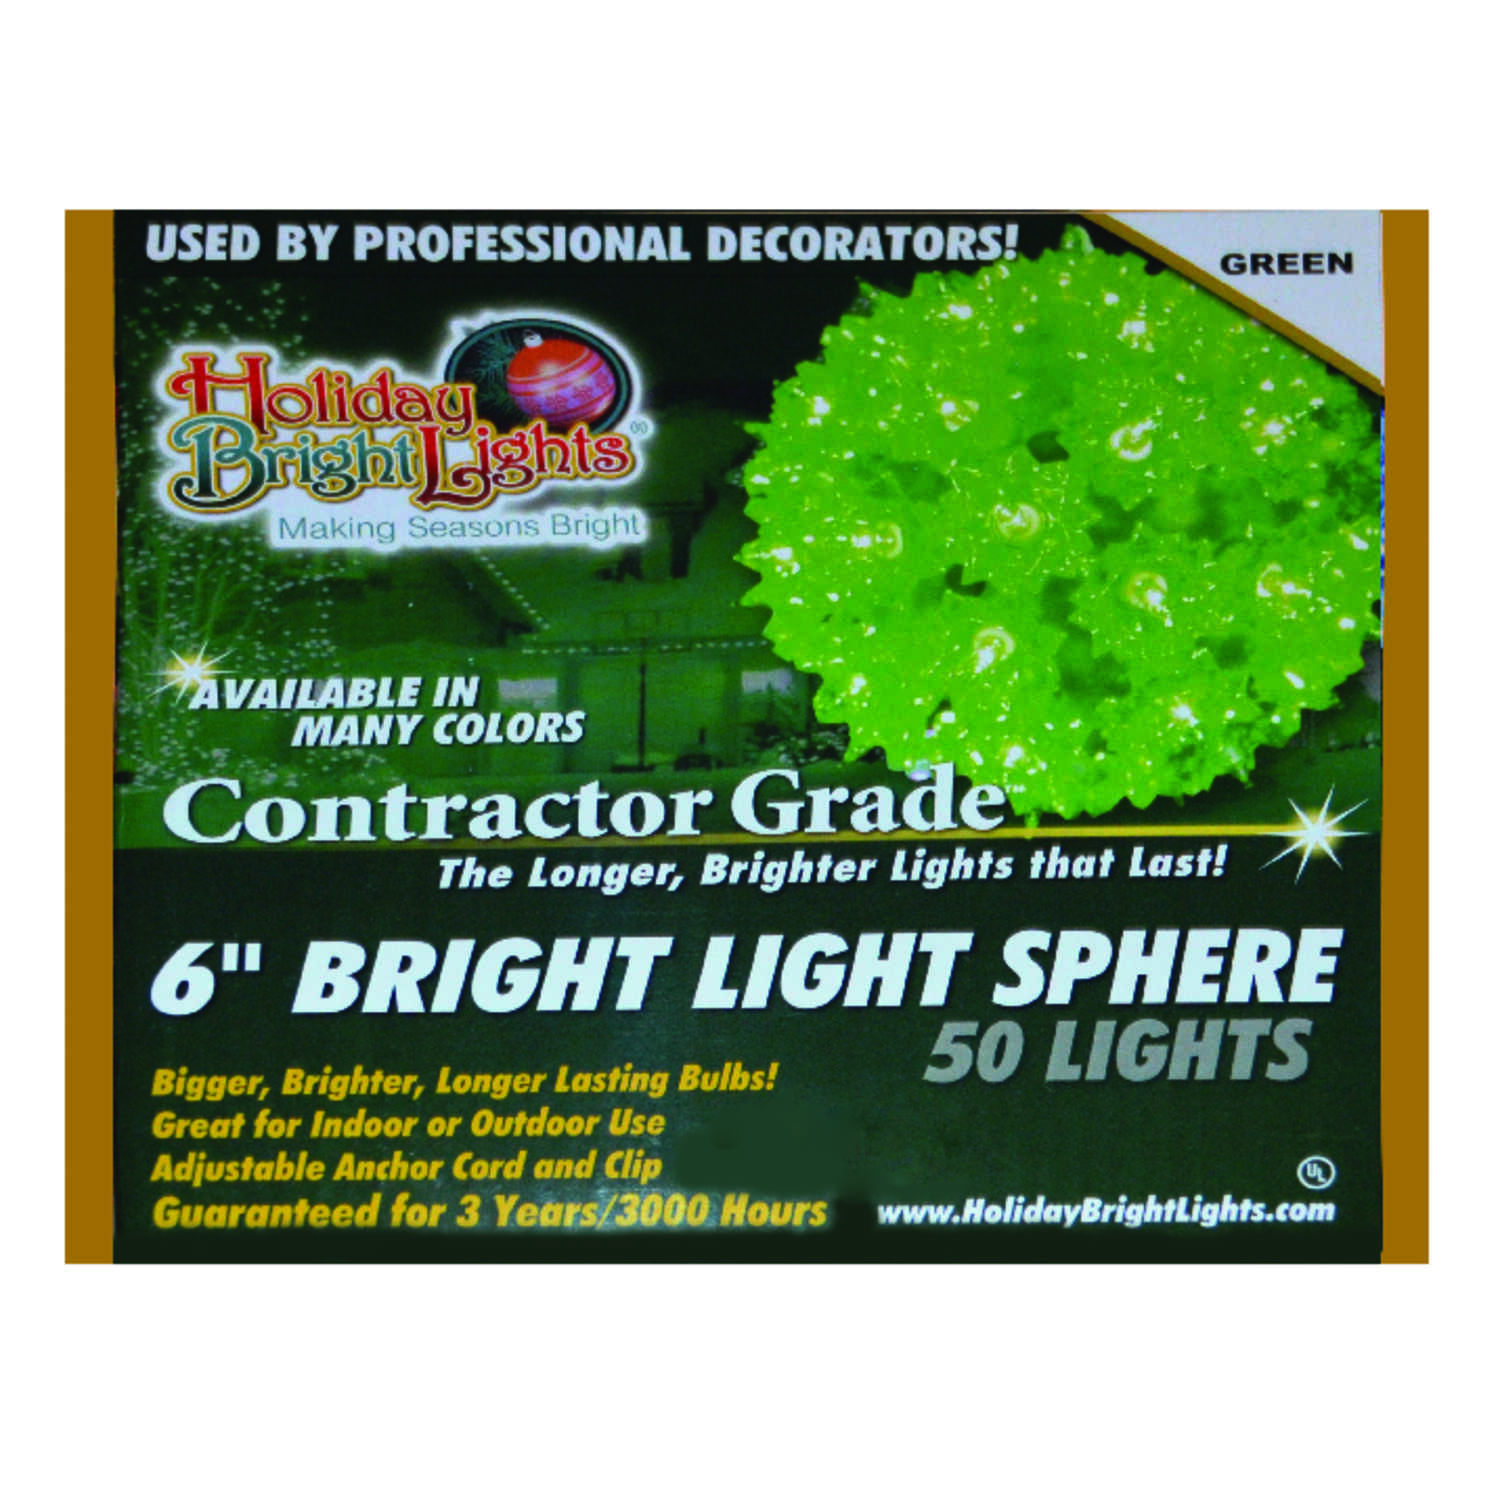 Holiday Bright Lights  Incandescent  Contractor  Sphere Light  Green  12 ft. 50 lights